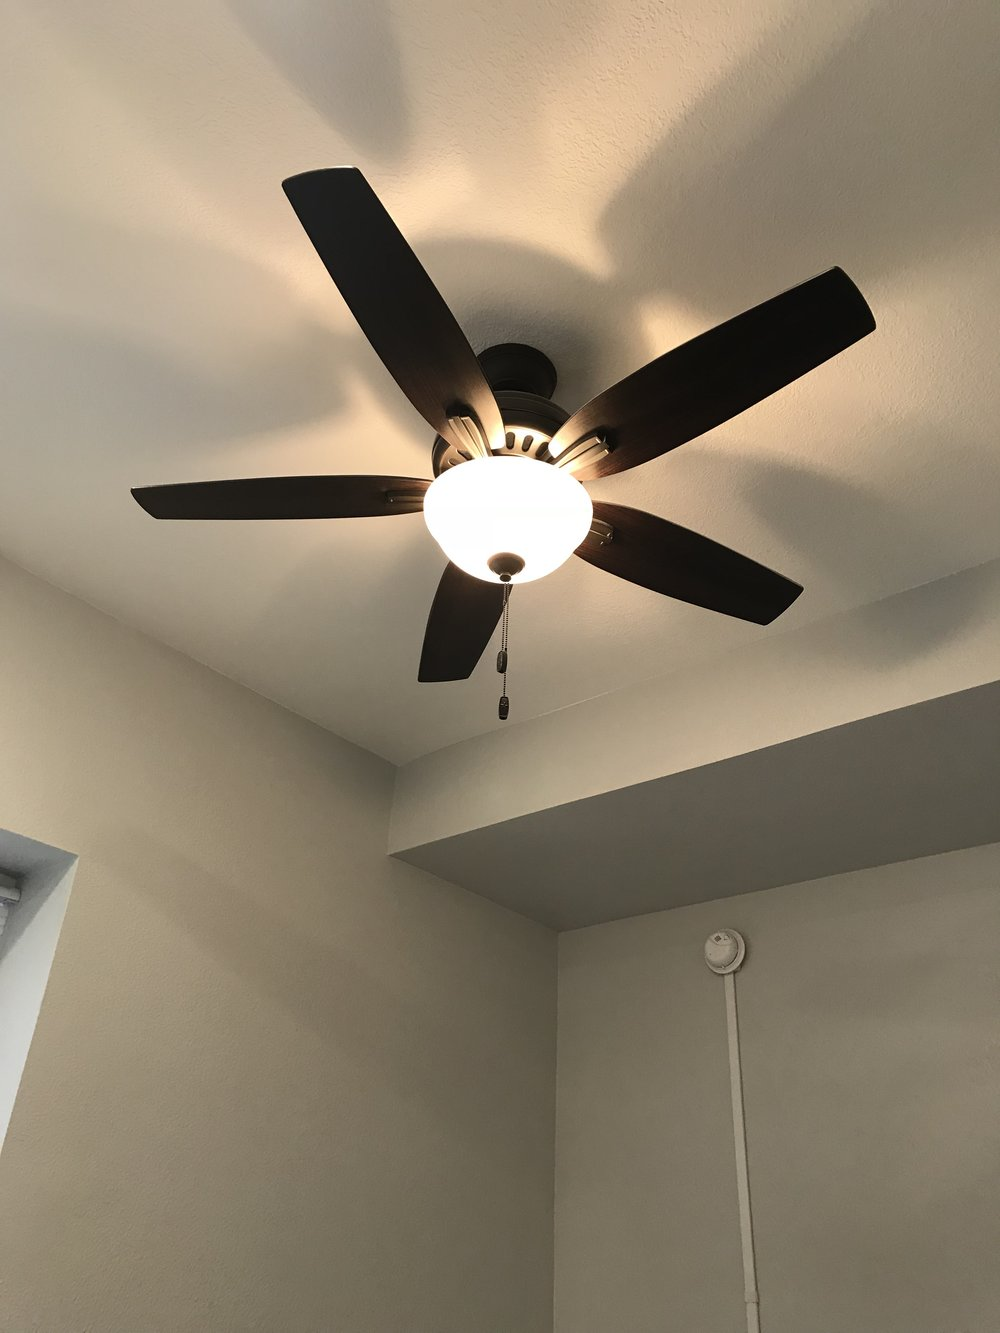 Ceiling Fans in LR and Bedroom